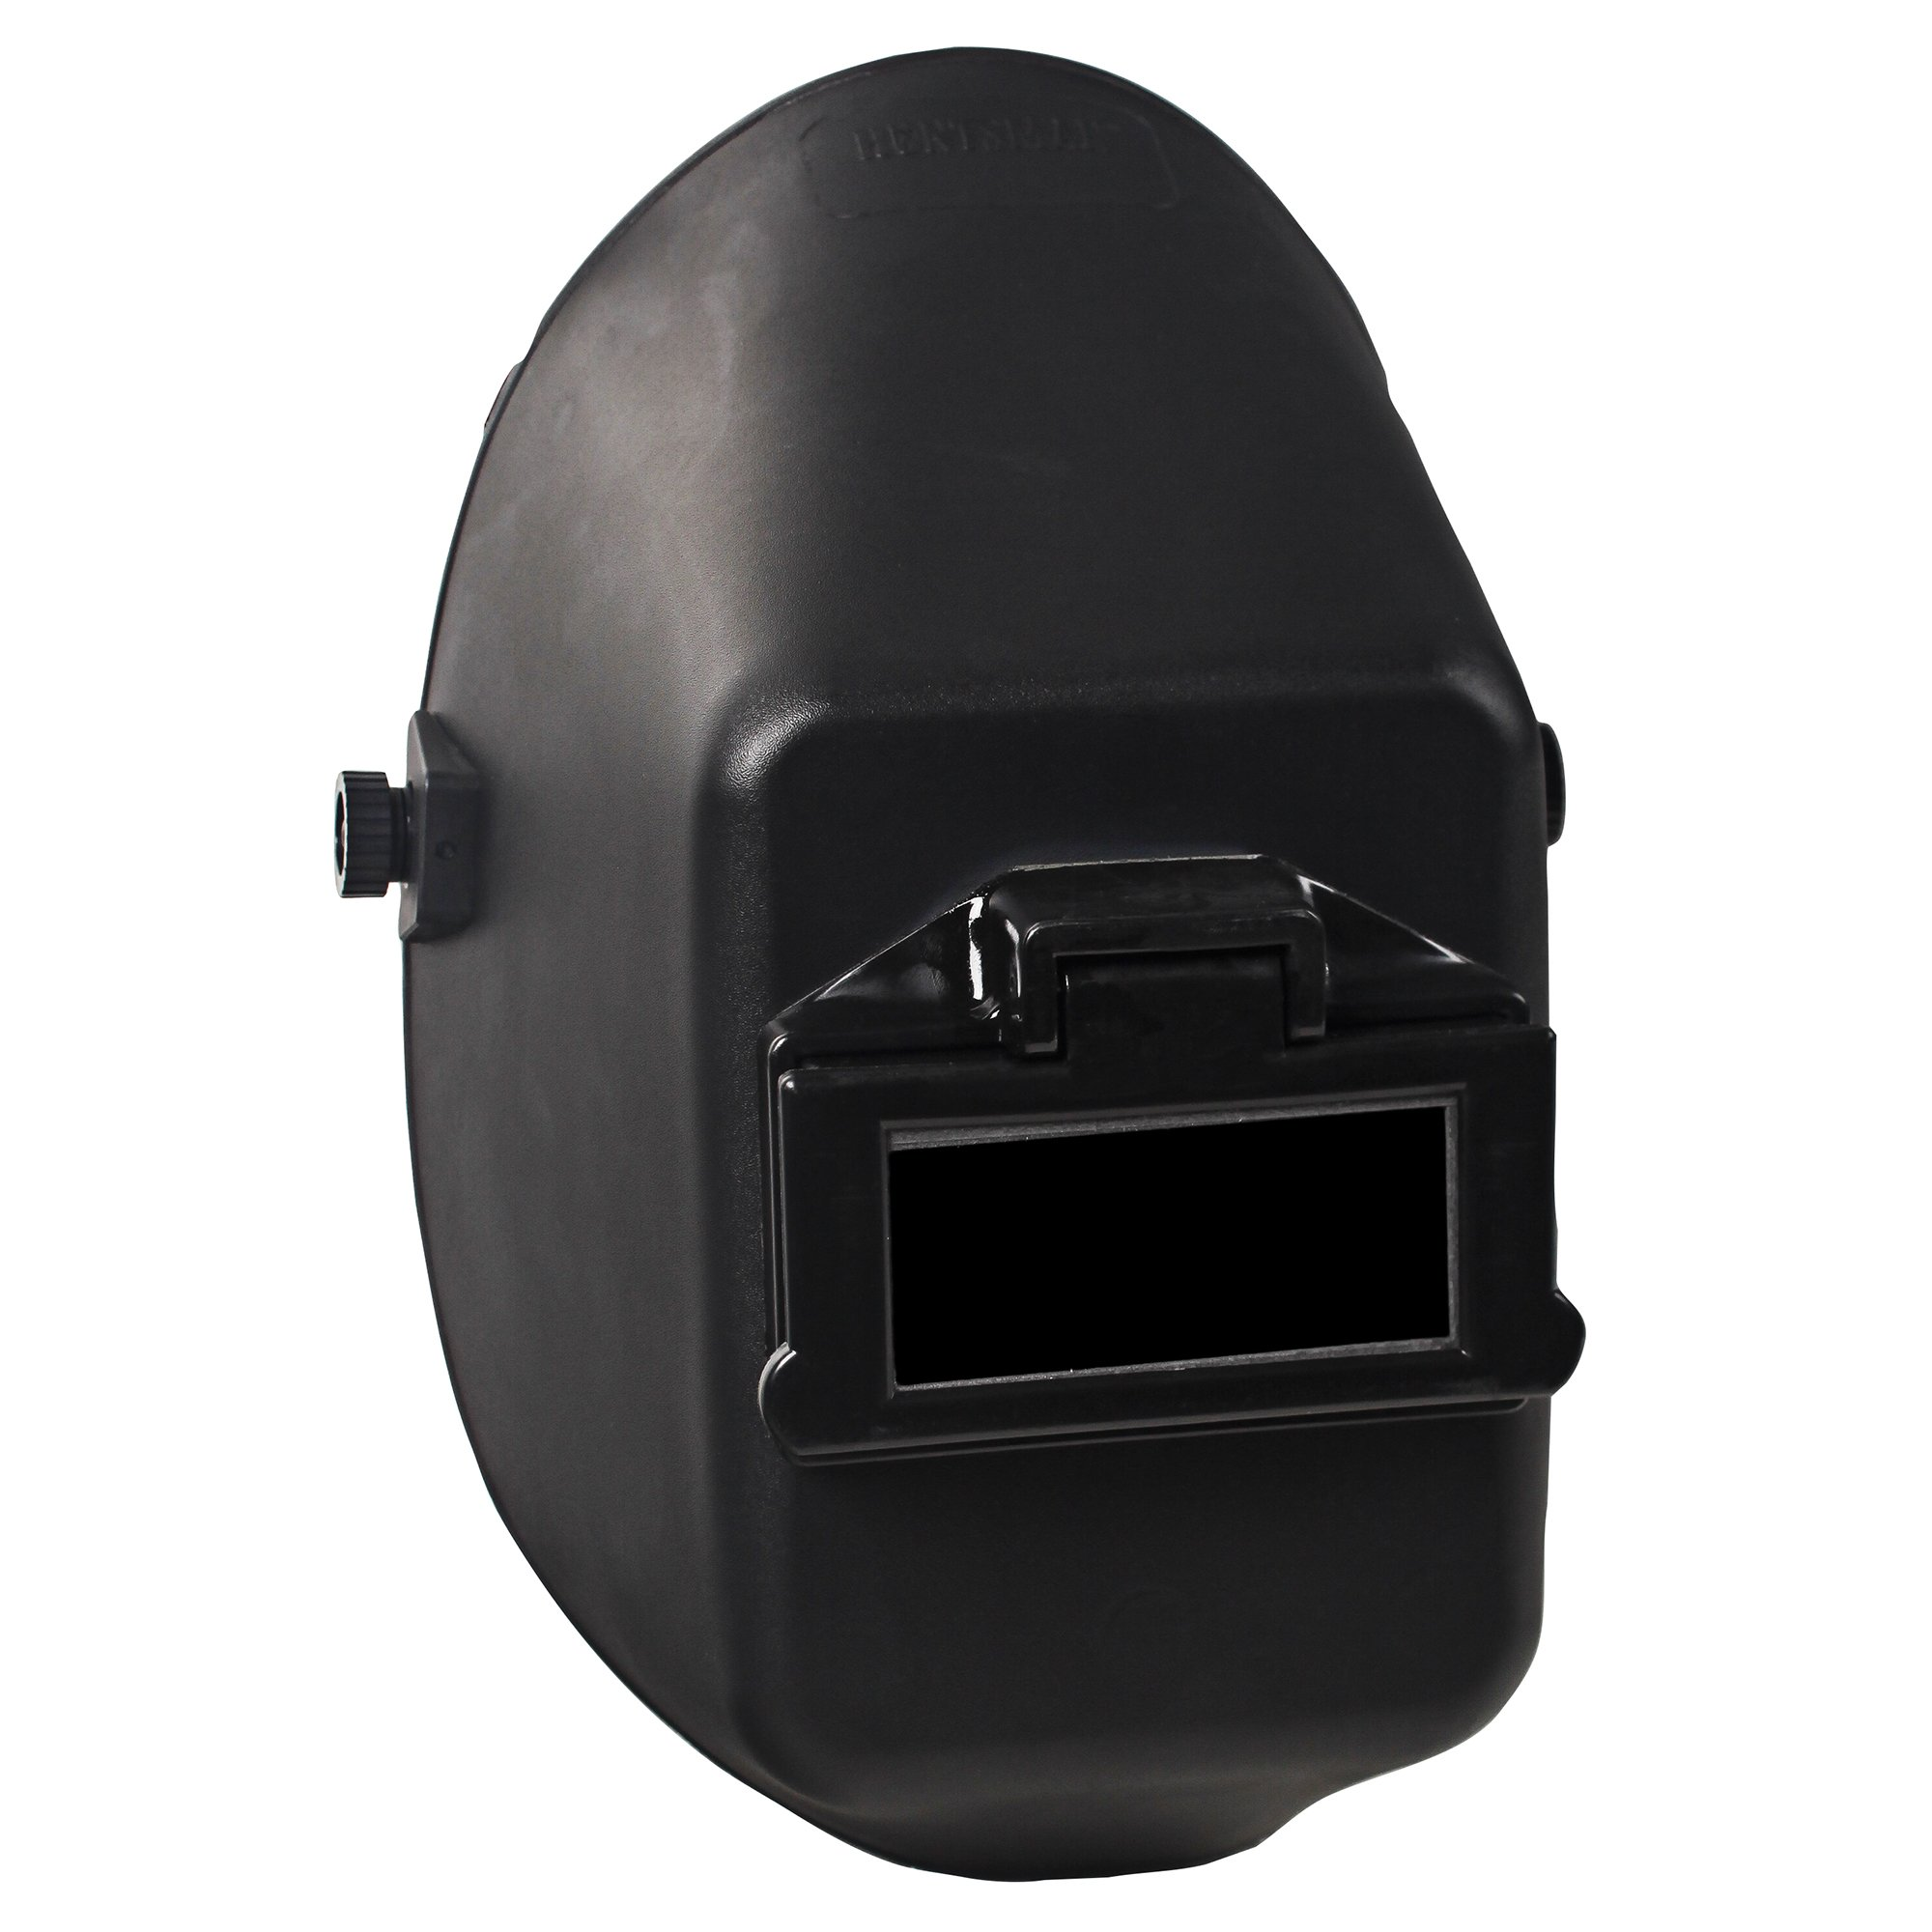 Jackson Safety W10 Passive Lift-Front Welding Helmet (14534), W10 930P with Shade 10 Filter, Black, 4 / Case by Jackson Safety (Image #1)